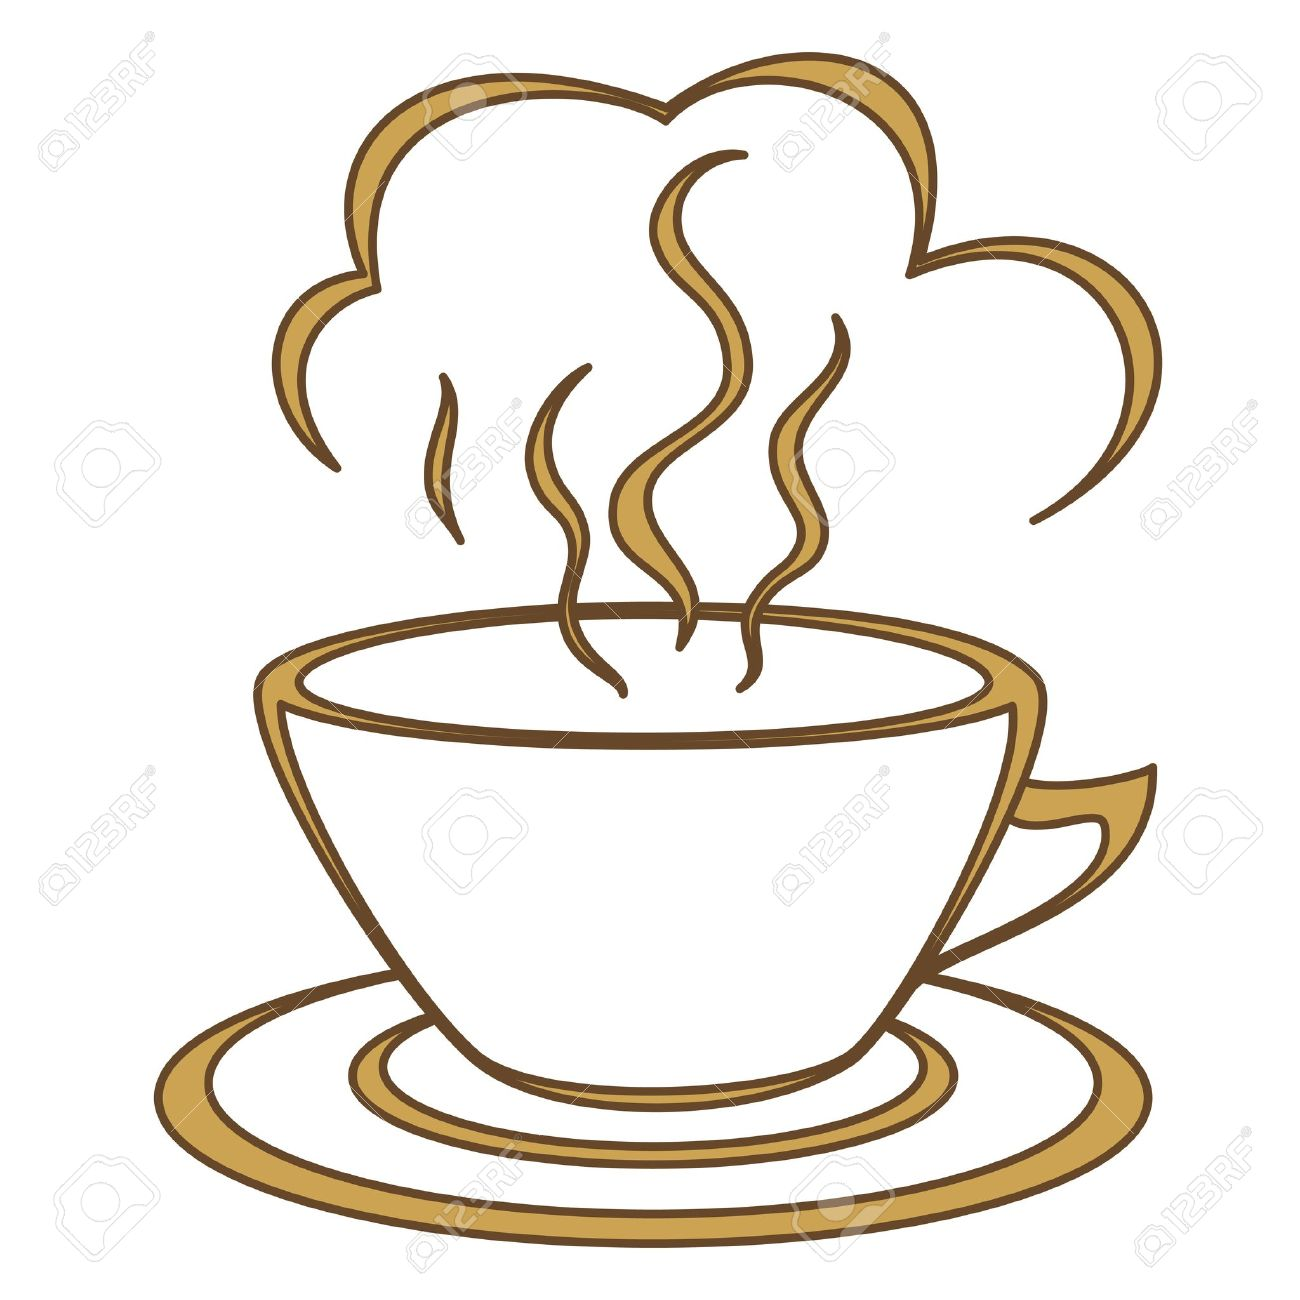 Coffee clipart coffee morning Coffee Cup Clipart clipart Morning